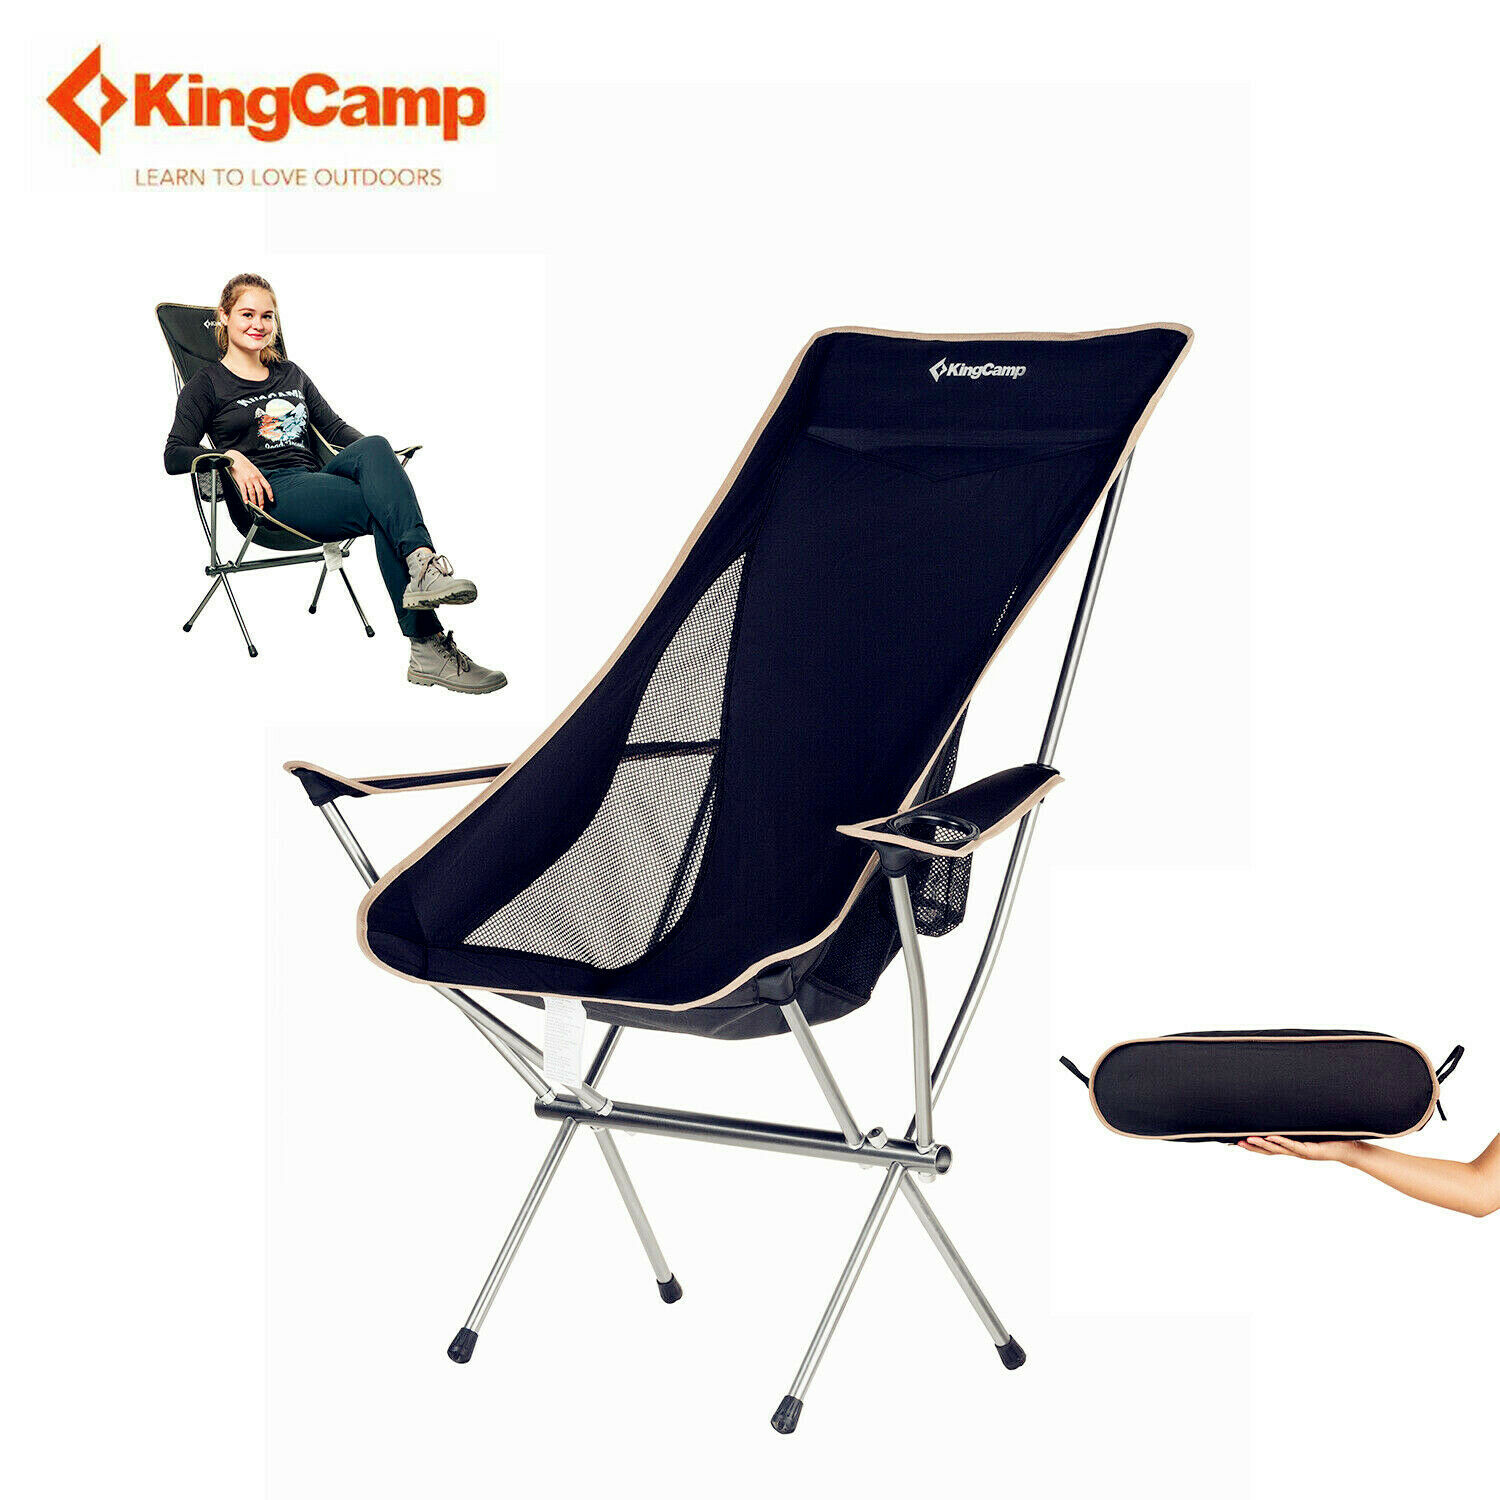 Details About Kingcamp Foldable Chair Camping Seat Portable Lightweight Beach Fishing Chair